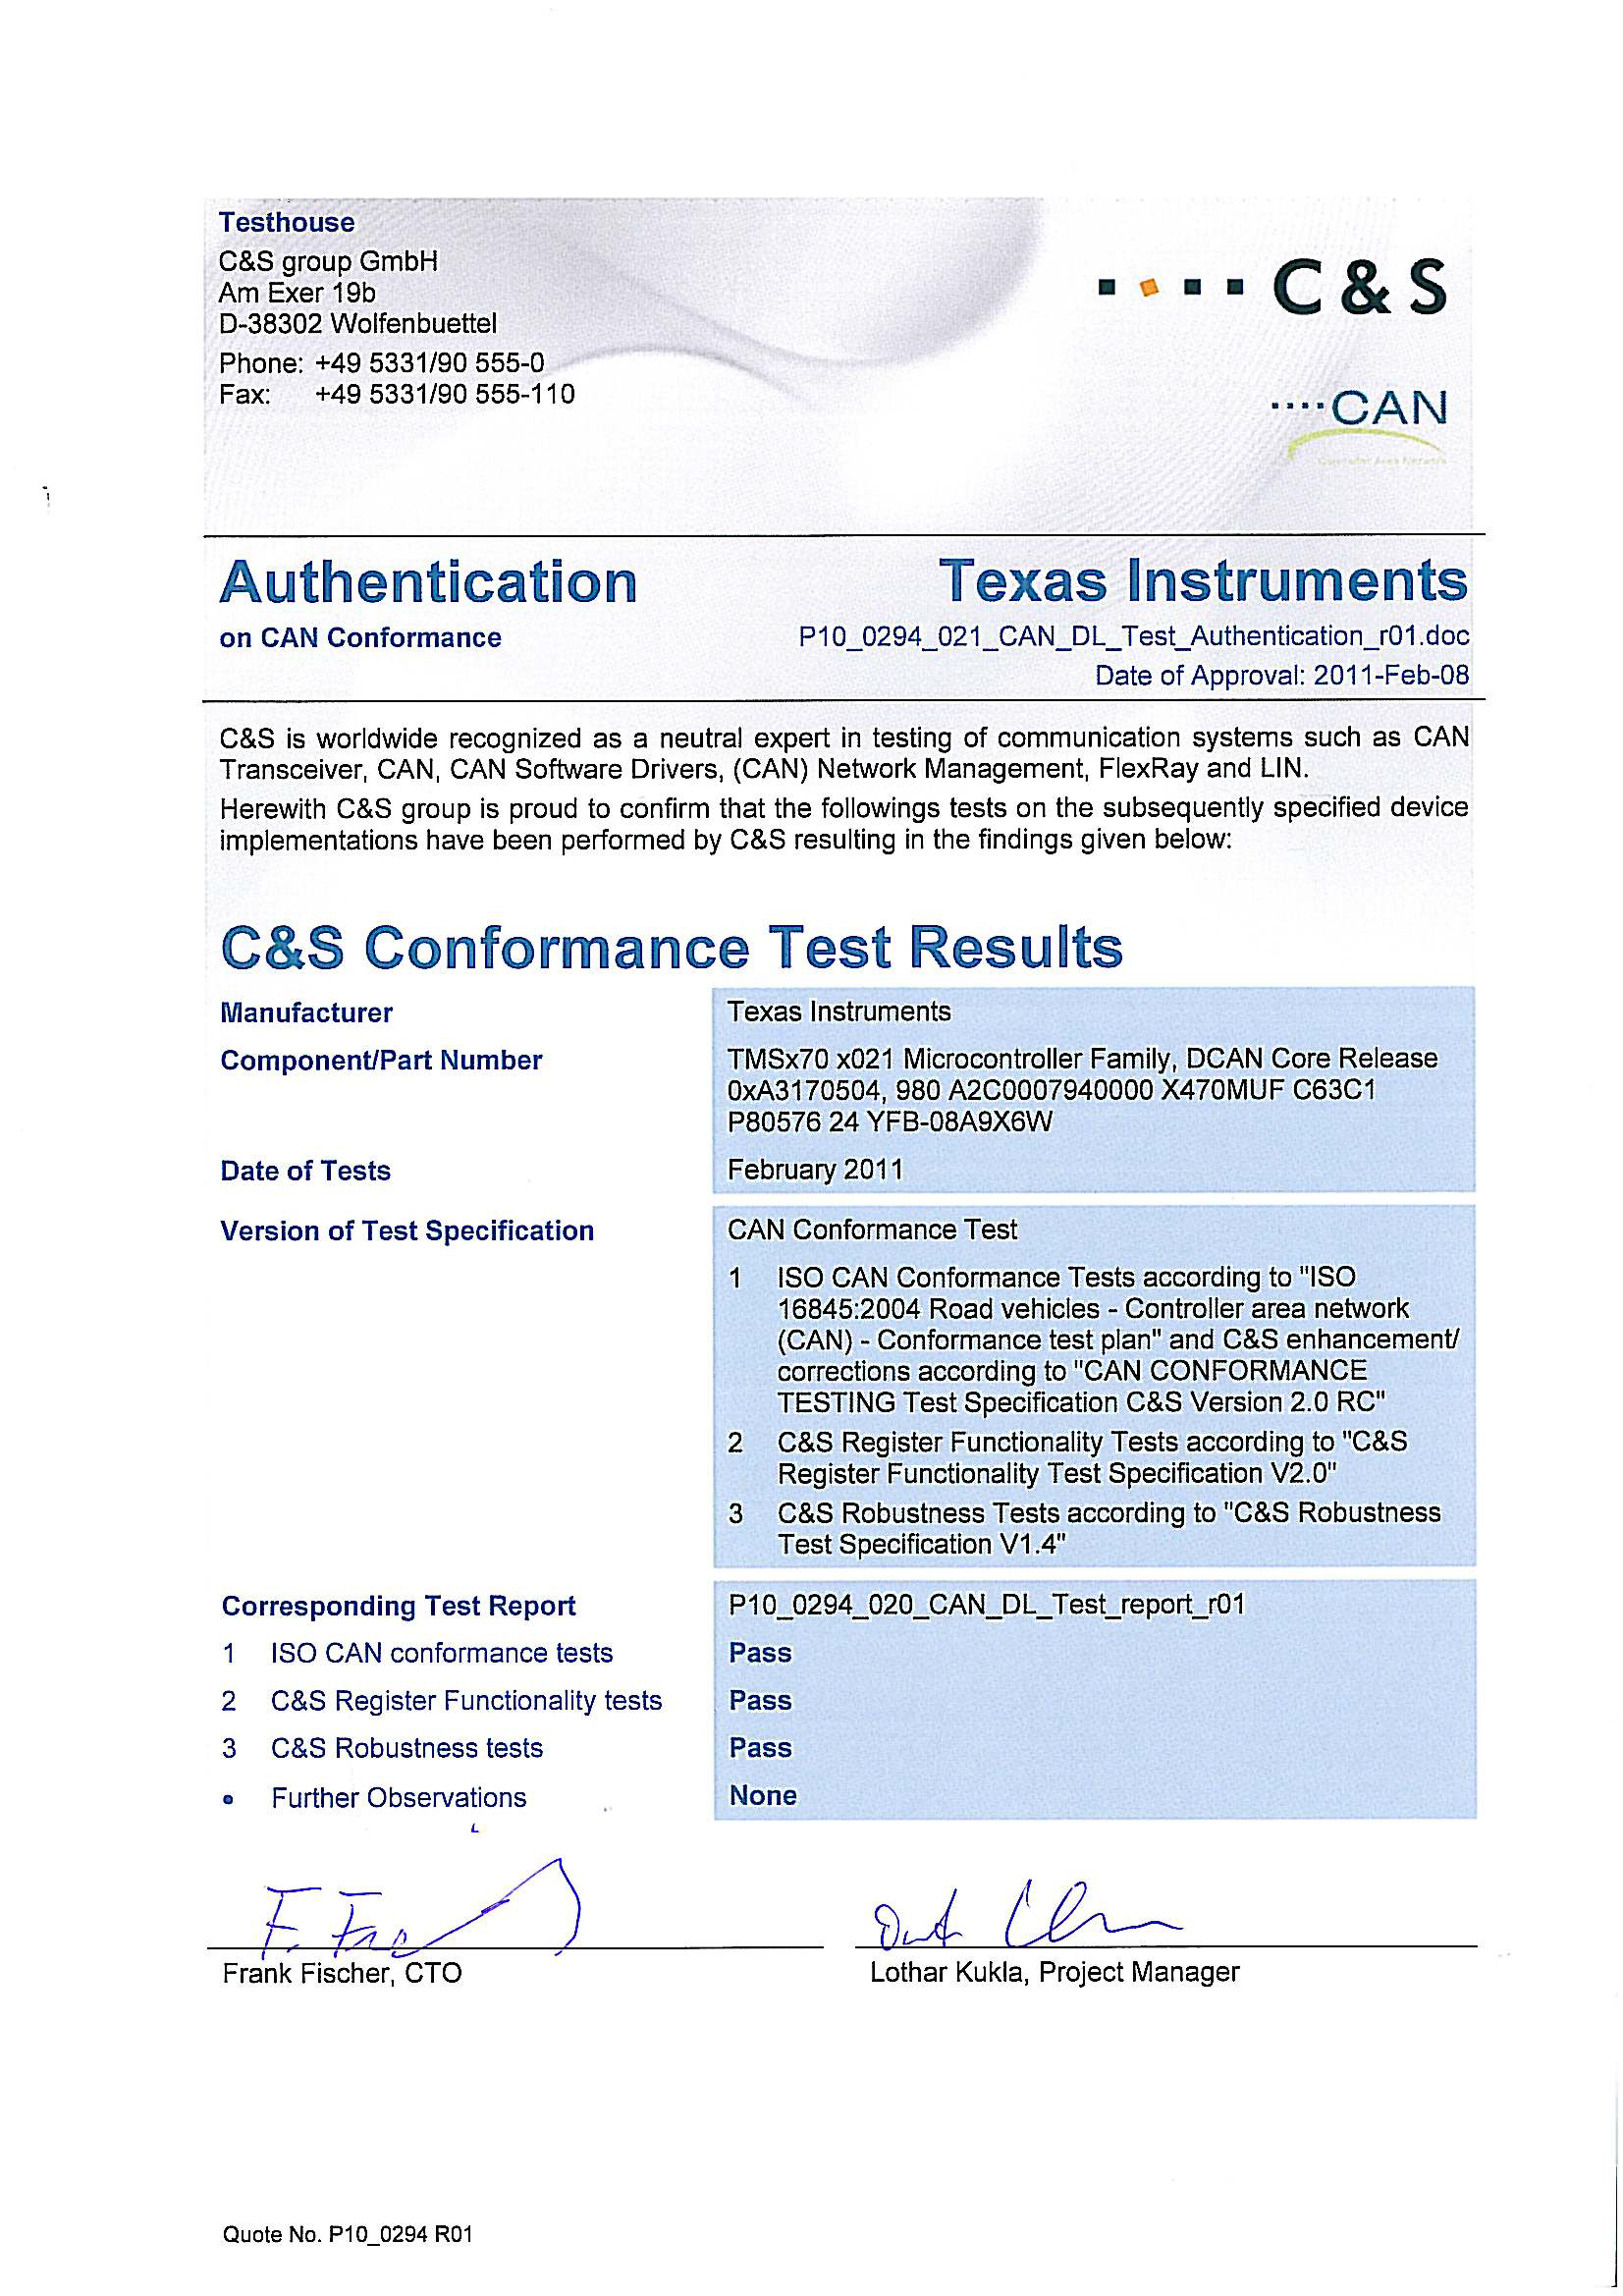 TMS570LS3137 CAN_Certification_2011_02_08.png